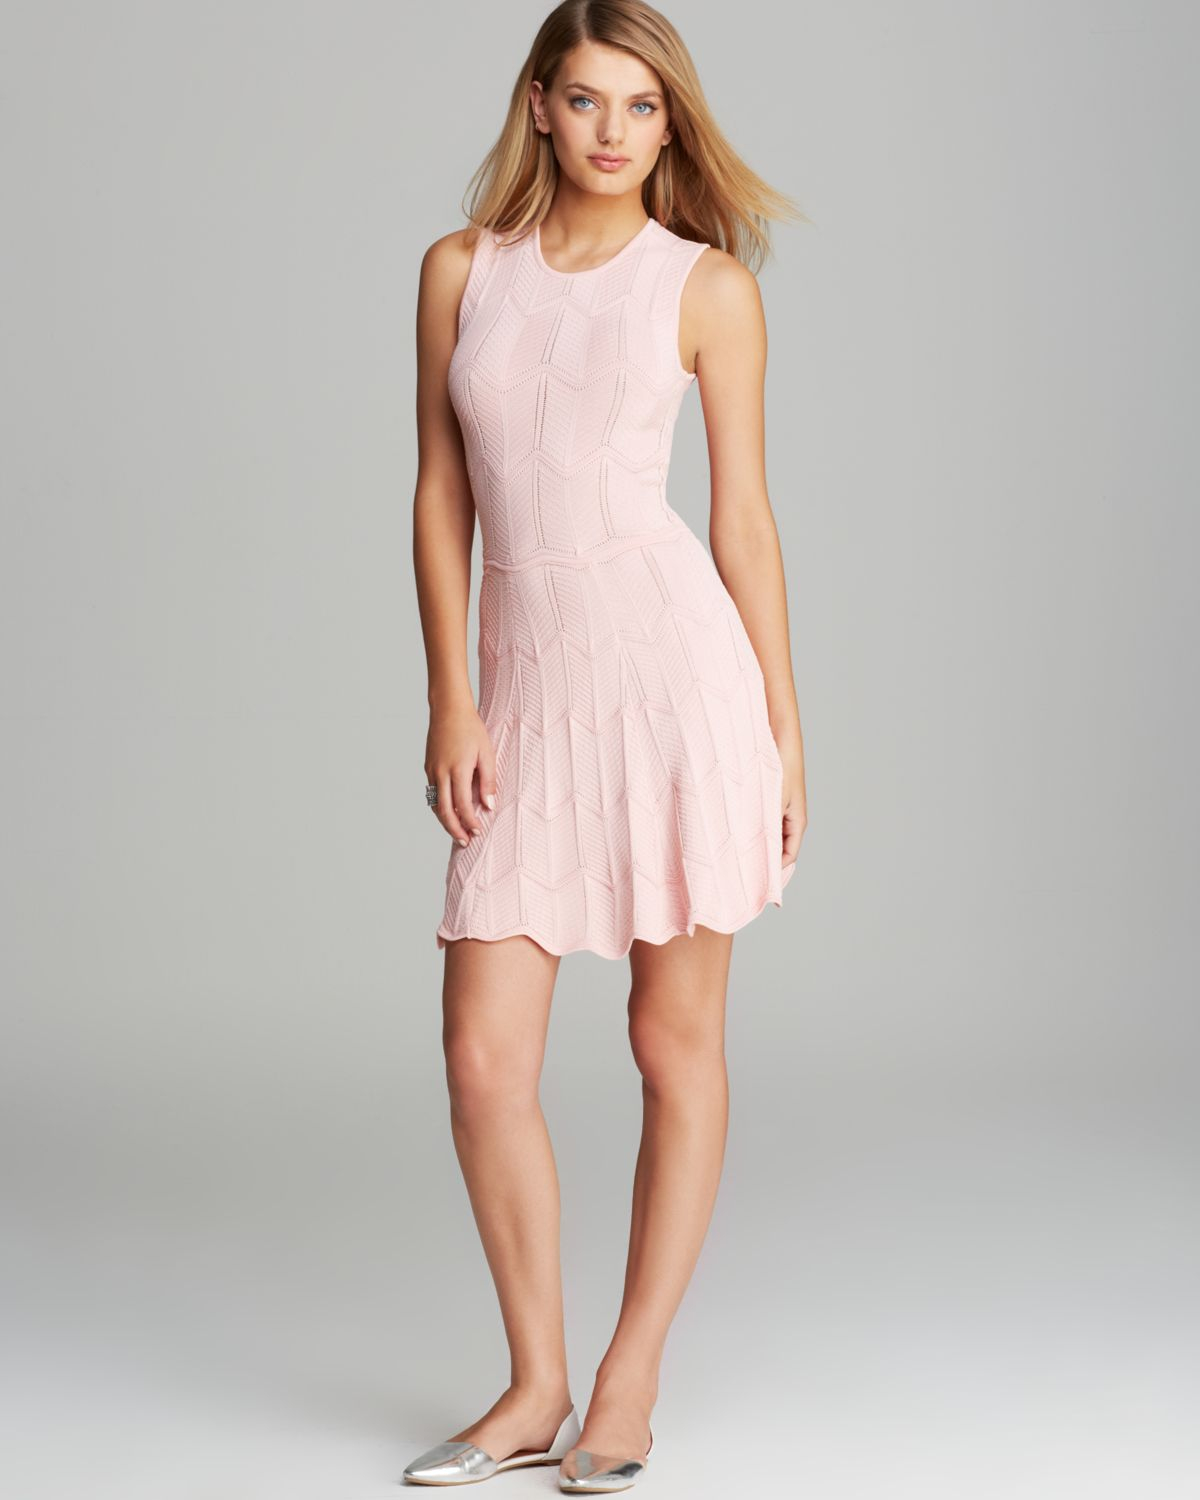 9484bf8075 Lyst - Torn By Ronny Kobo Dress Cori Zigzag Knit in Pink